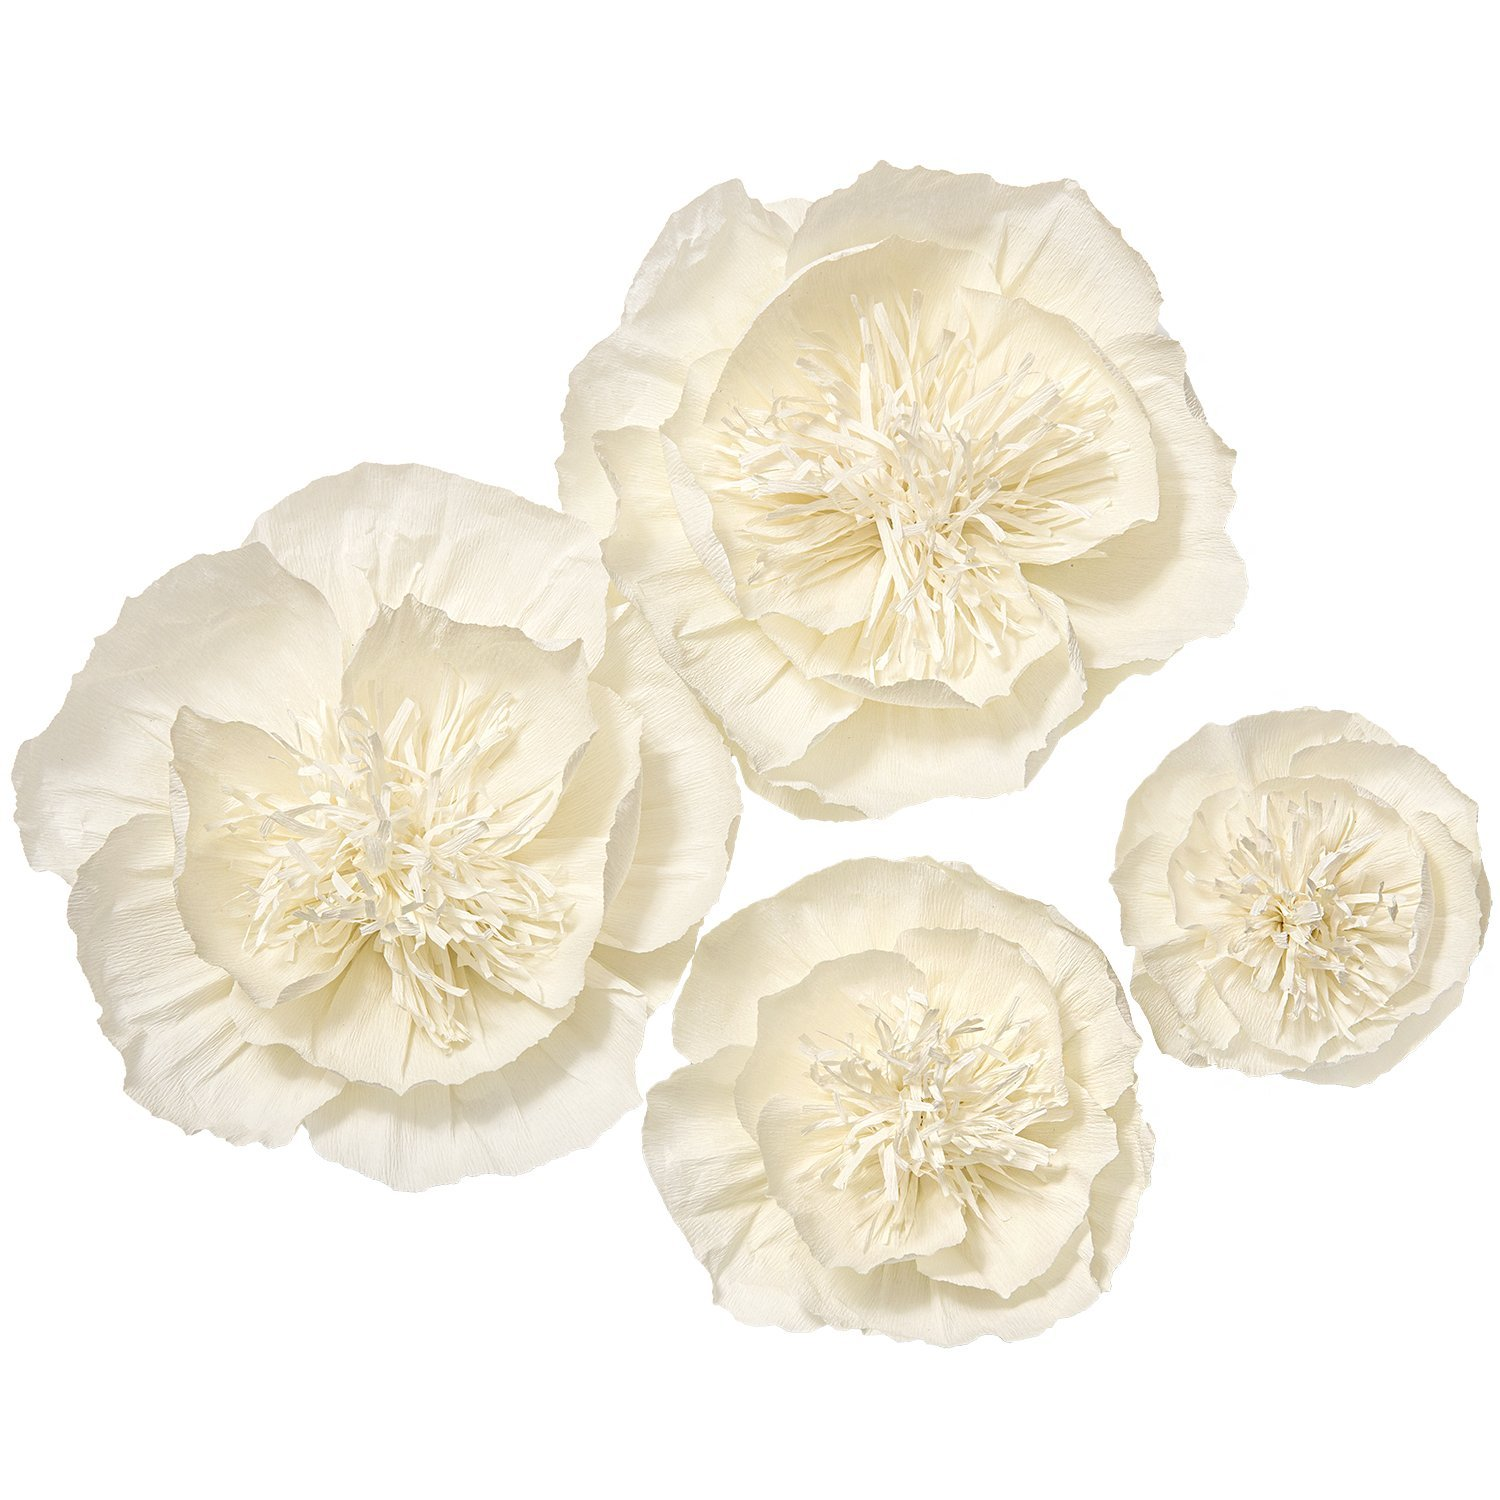 Amazon Lings Moment Giant Paper Flowers 4 X Cream White Peony